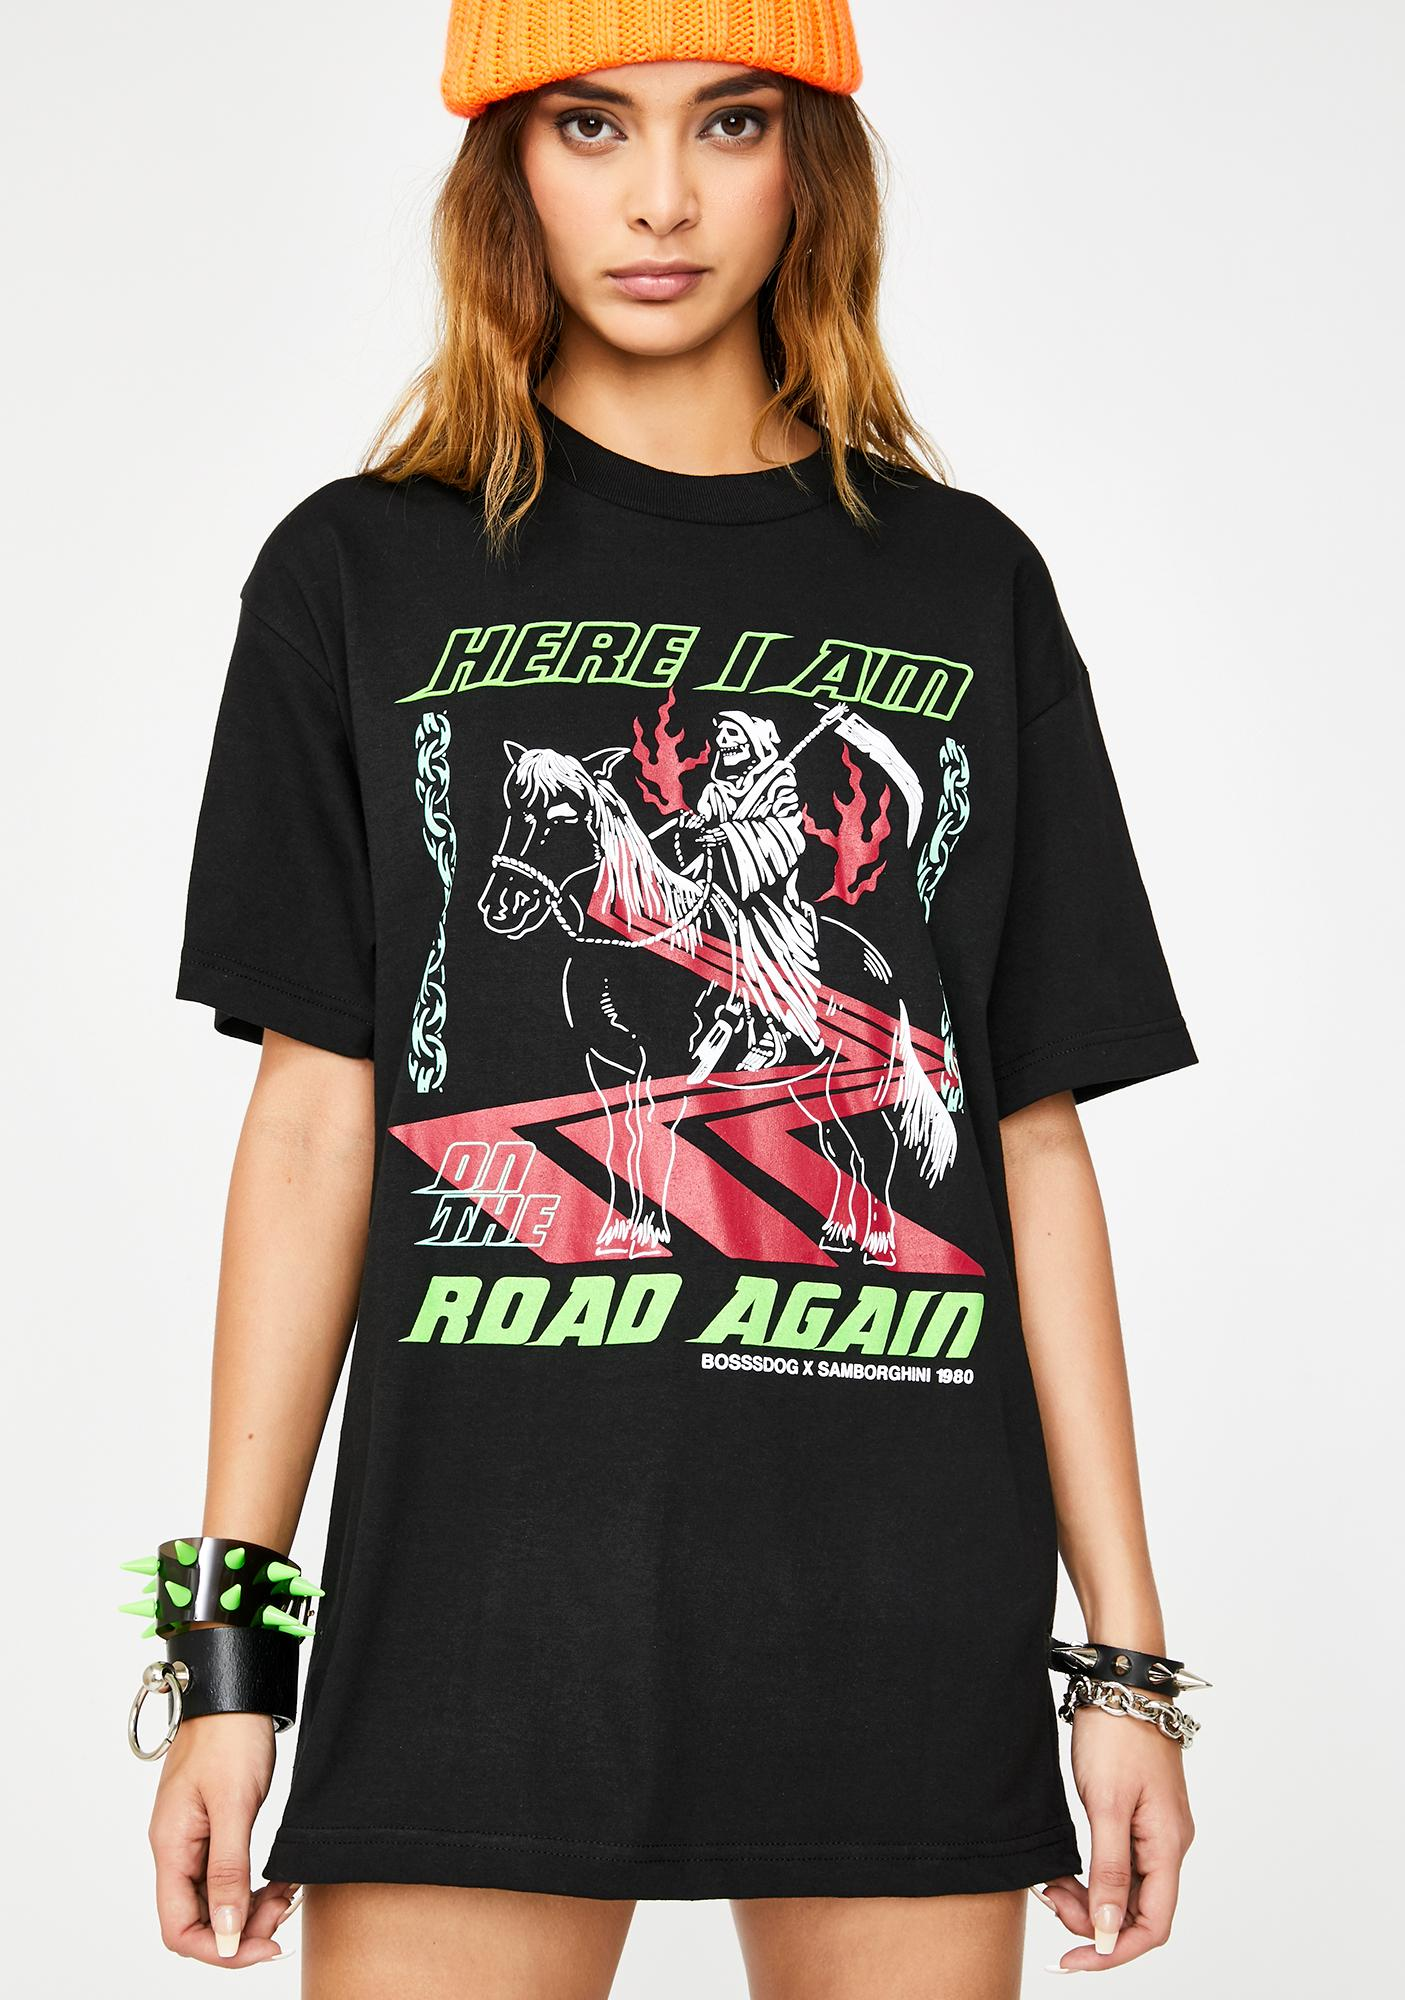 Samborghini x Boss Dog On The Road Again Graphic Tee